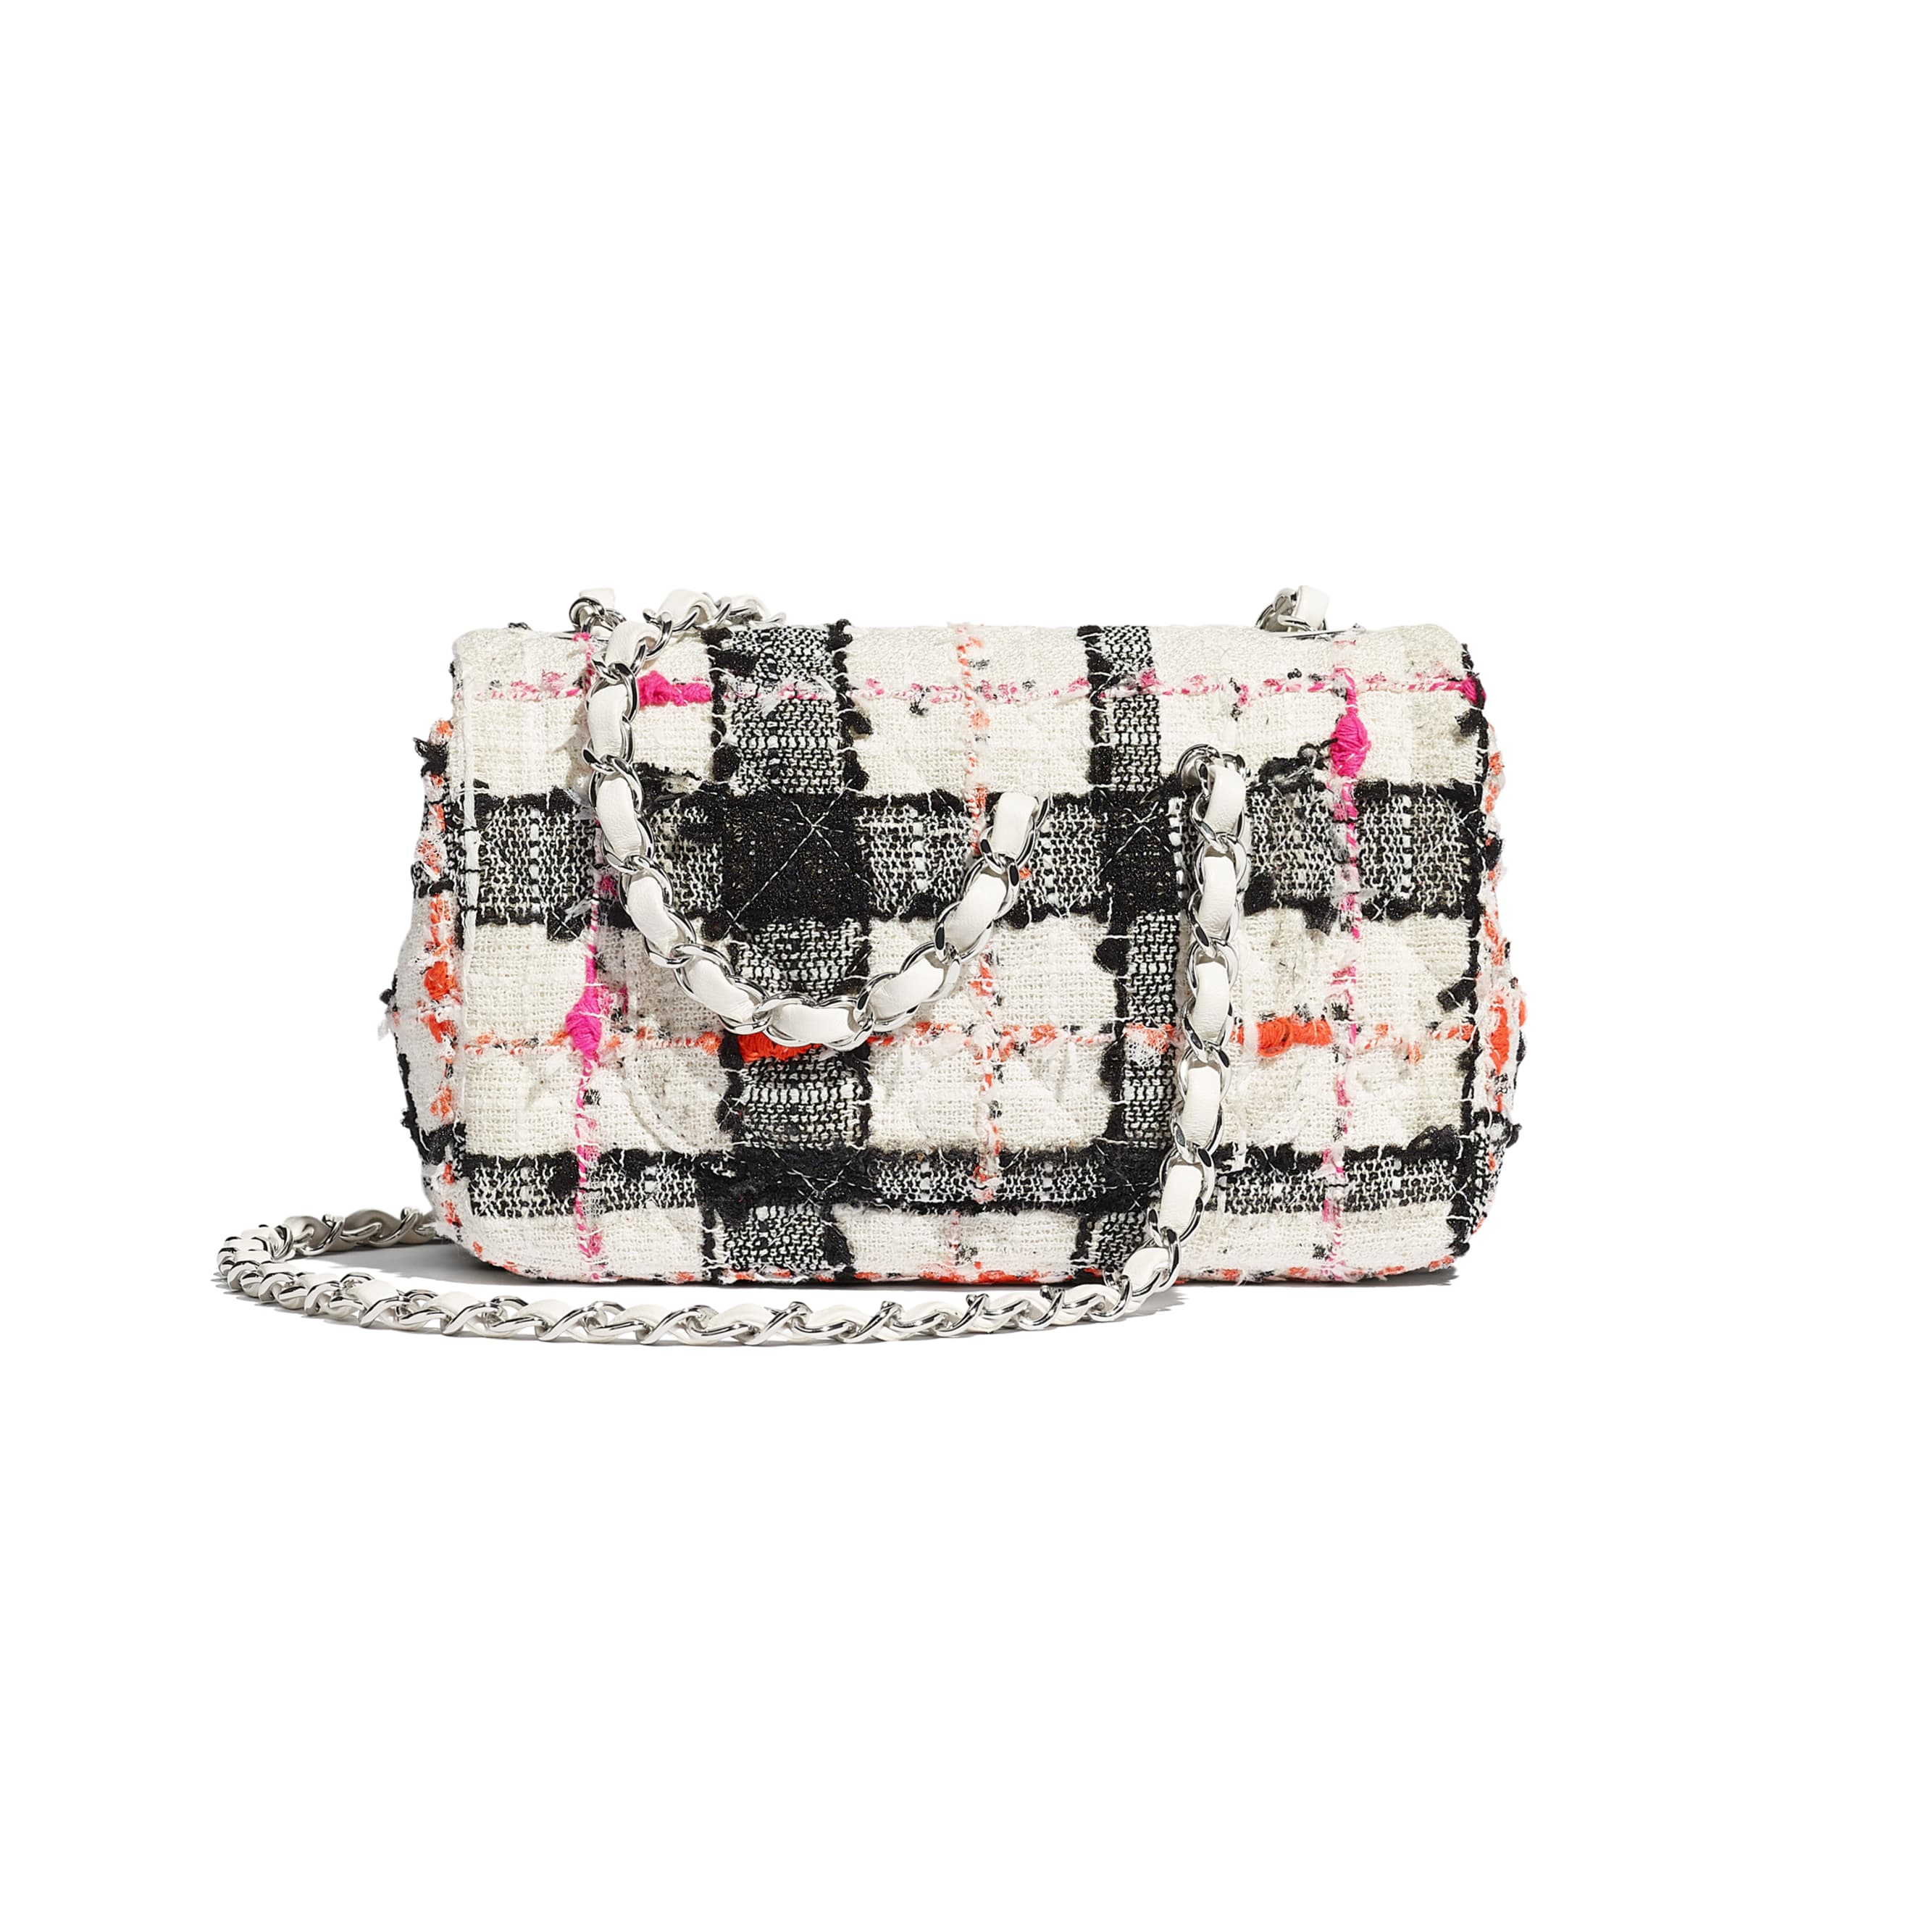 Mini Flap Bag - White, Black, Pink & Orange - Tweed & Silver-Tone Metal - Alternative view - see standard sized version